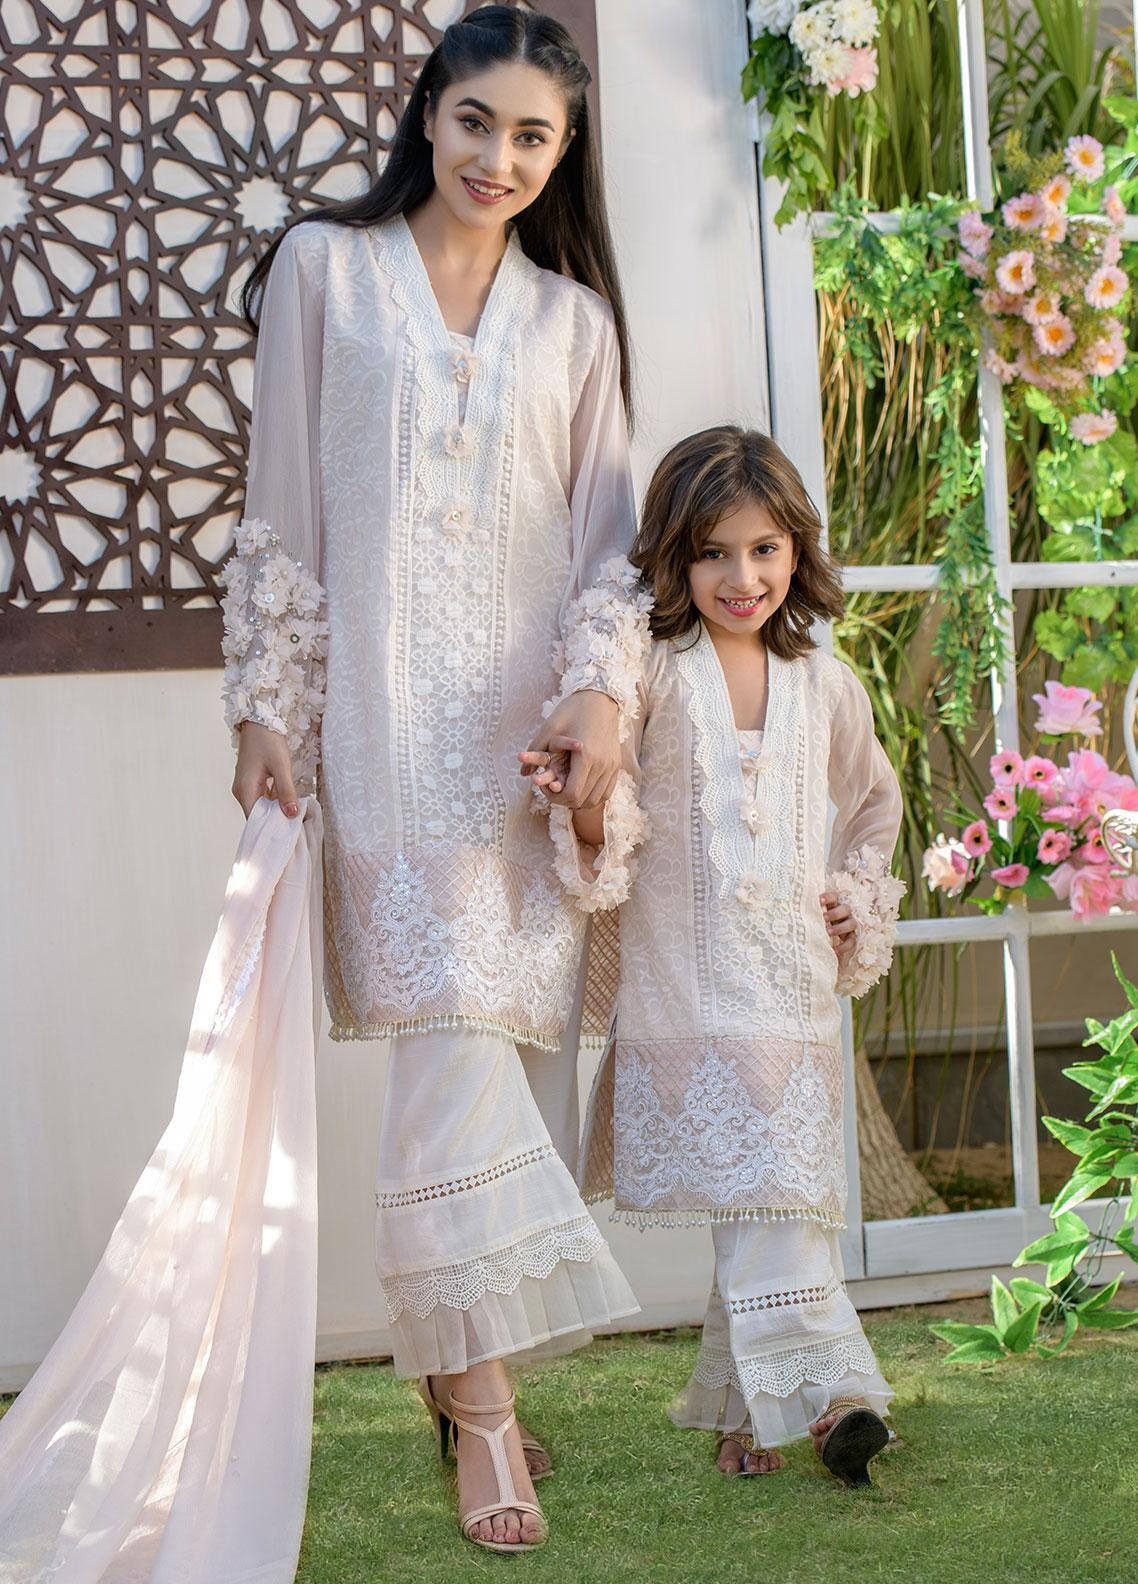 Chic Ophicial Chiffon Formal 2 Piece Suit for Girls -  CH08 Floaral Peach